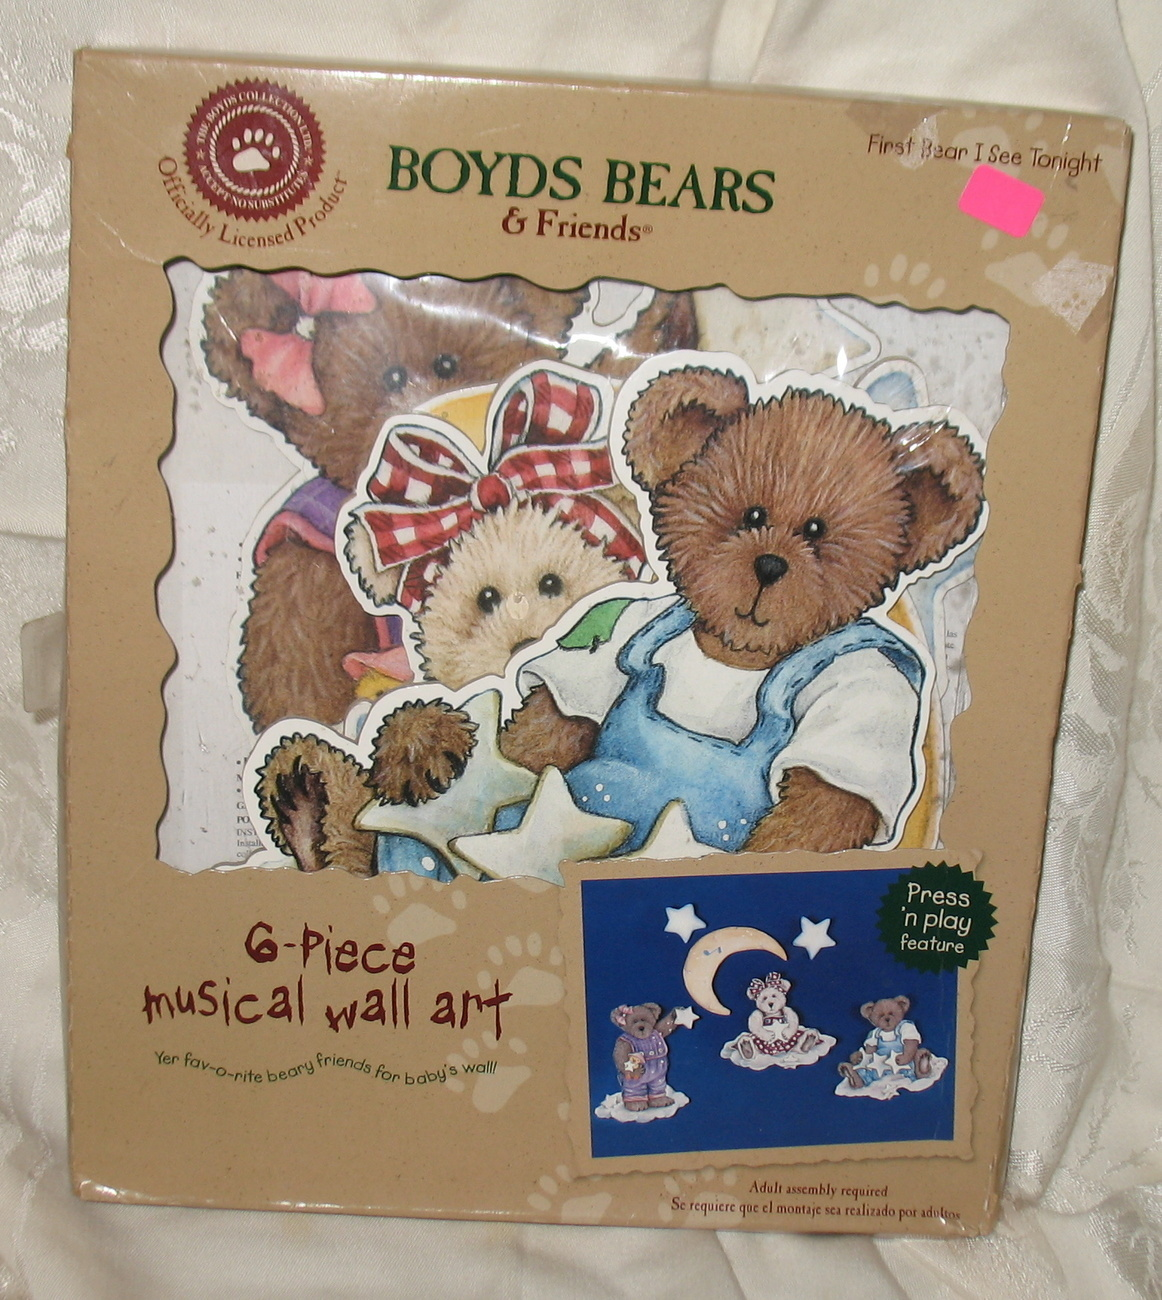 Boyds Bears & Friends 6 Piece Musical Wall Art NIB 2002